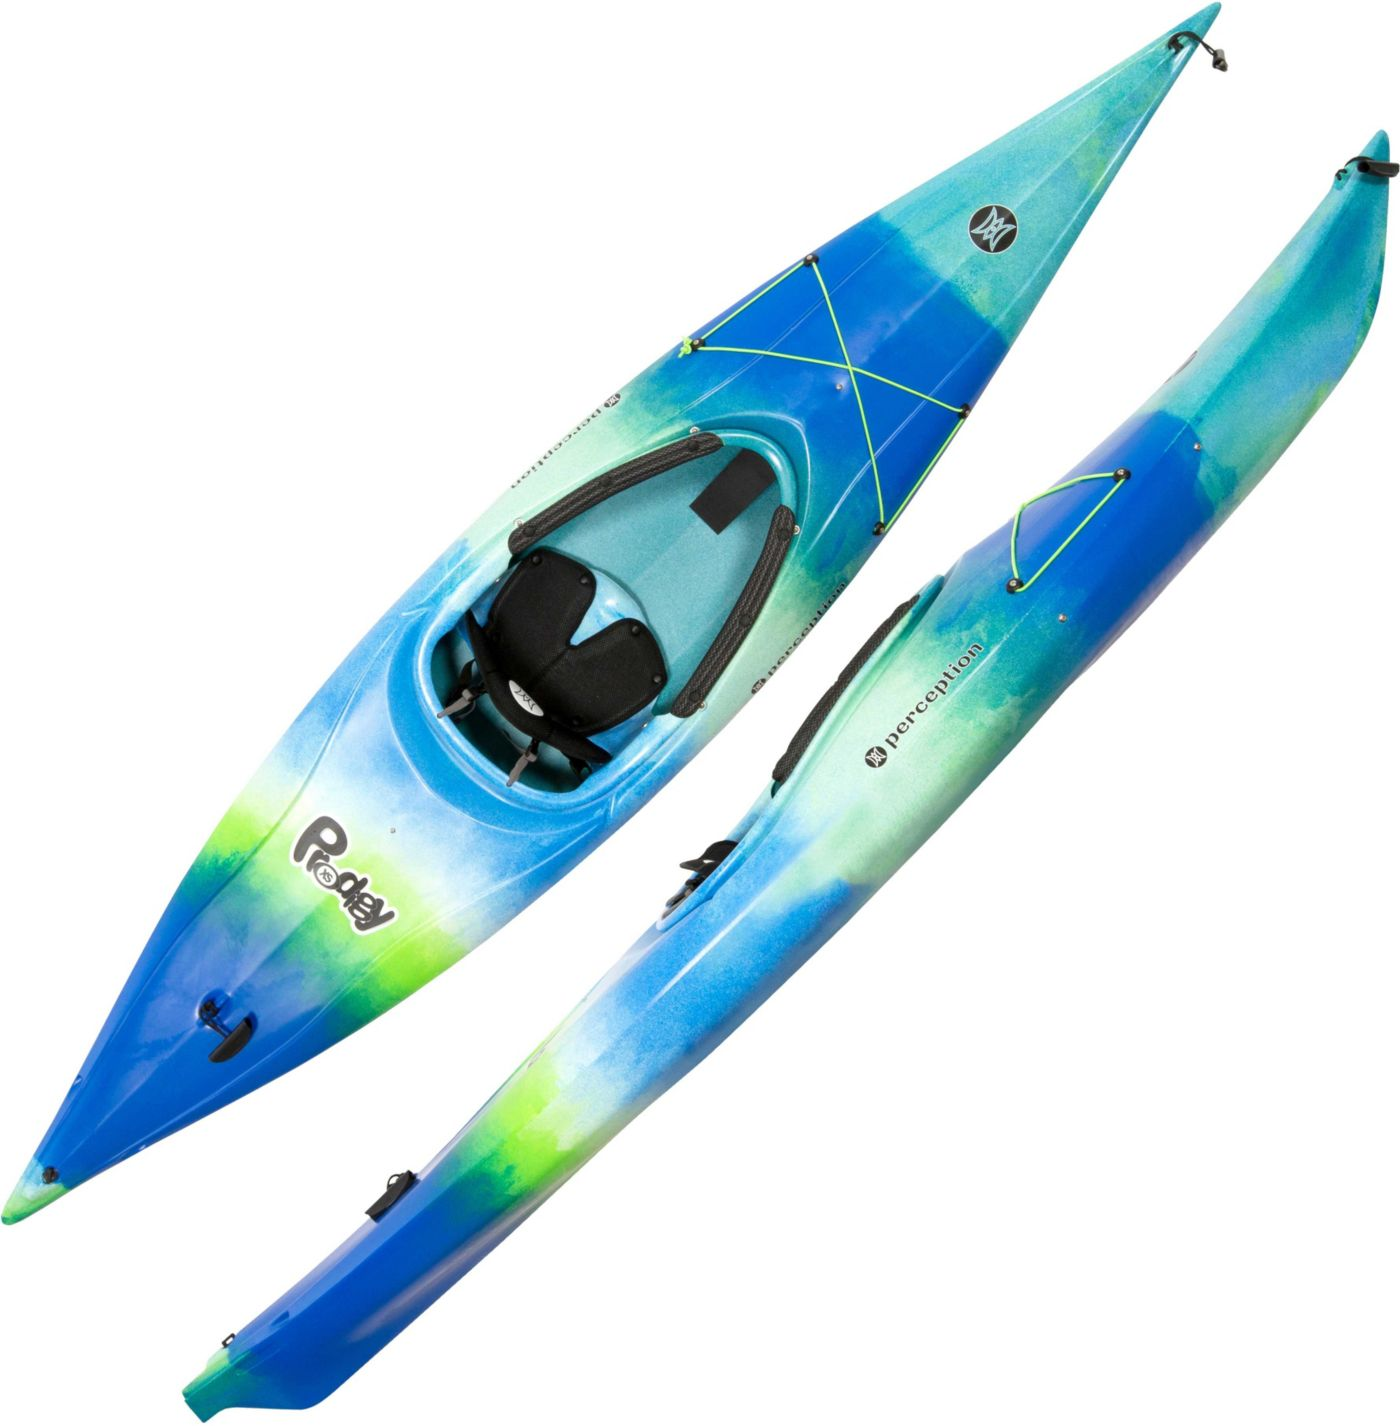 Perception Prodigy XS 10.0 Kayak